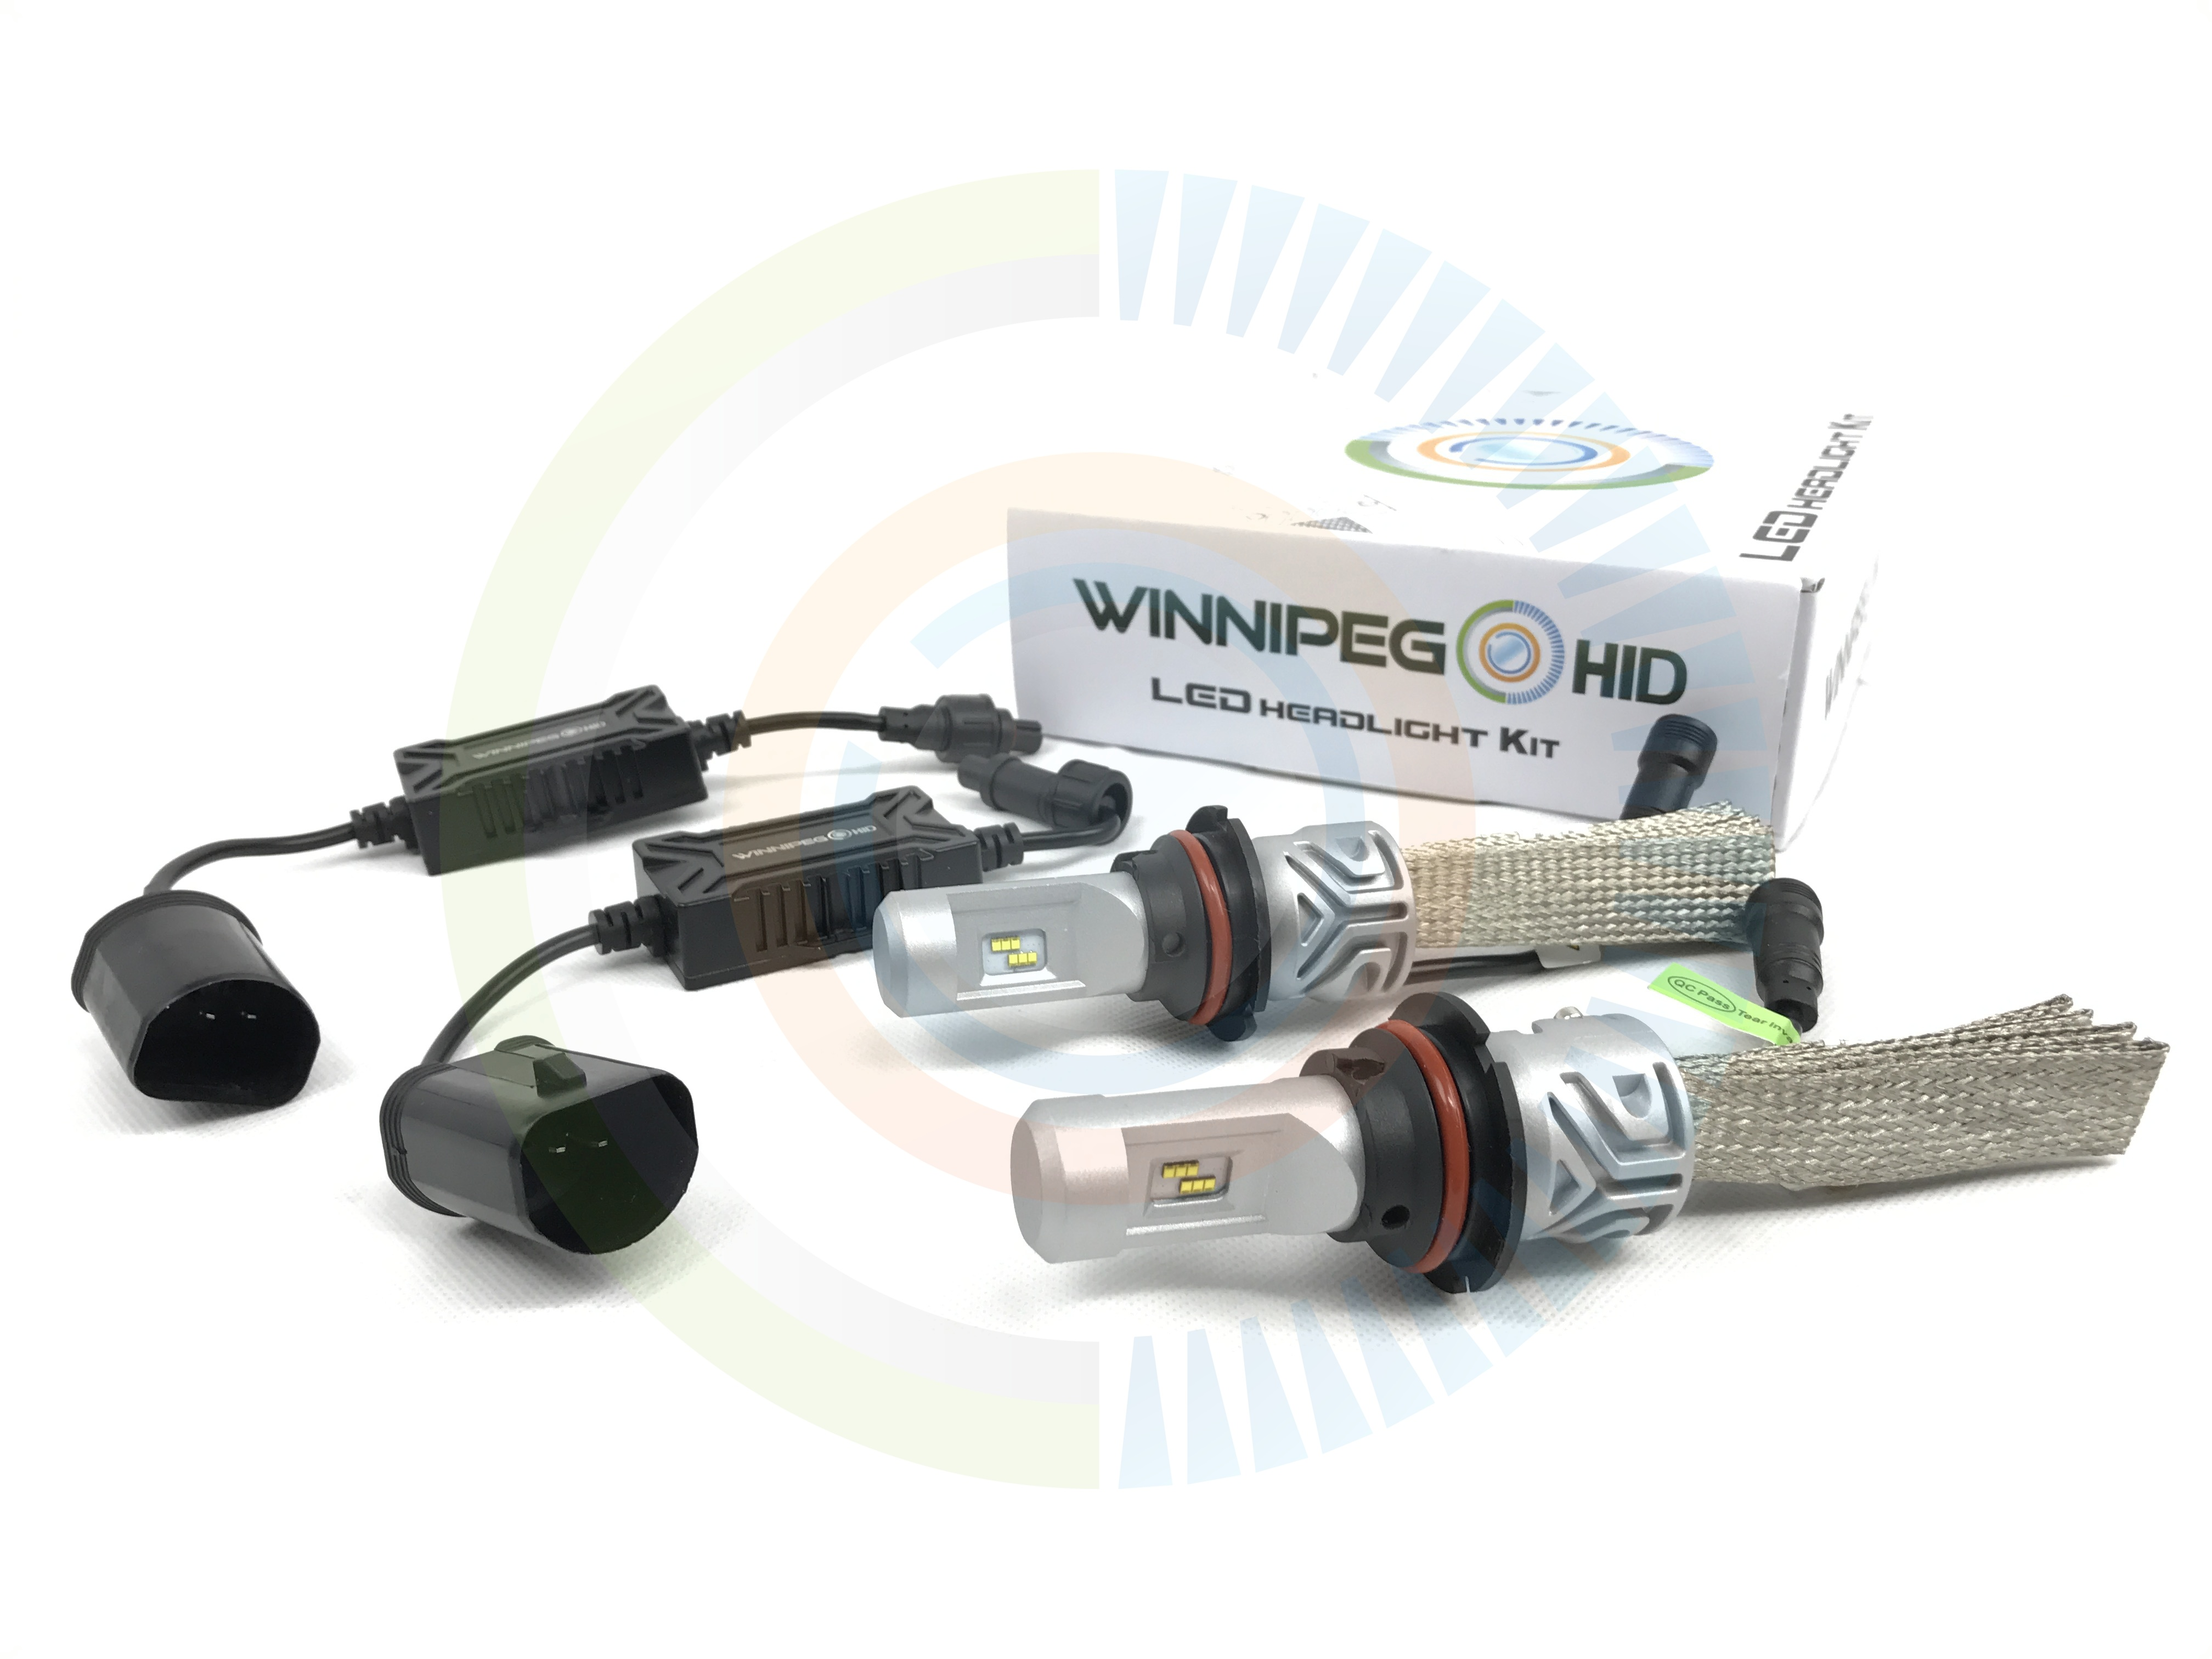 Winnipeg Hid Perfectbeam Led Headlight Kits Winnipeg Hid